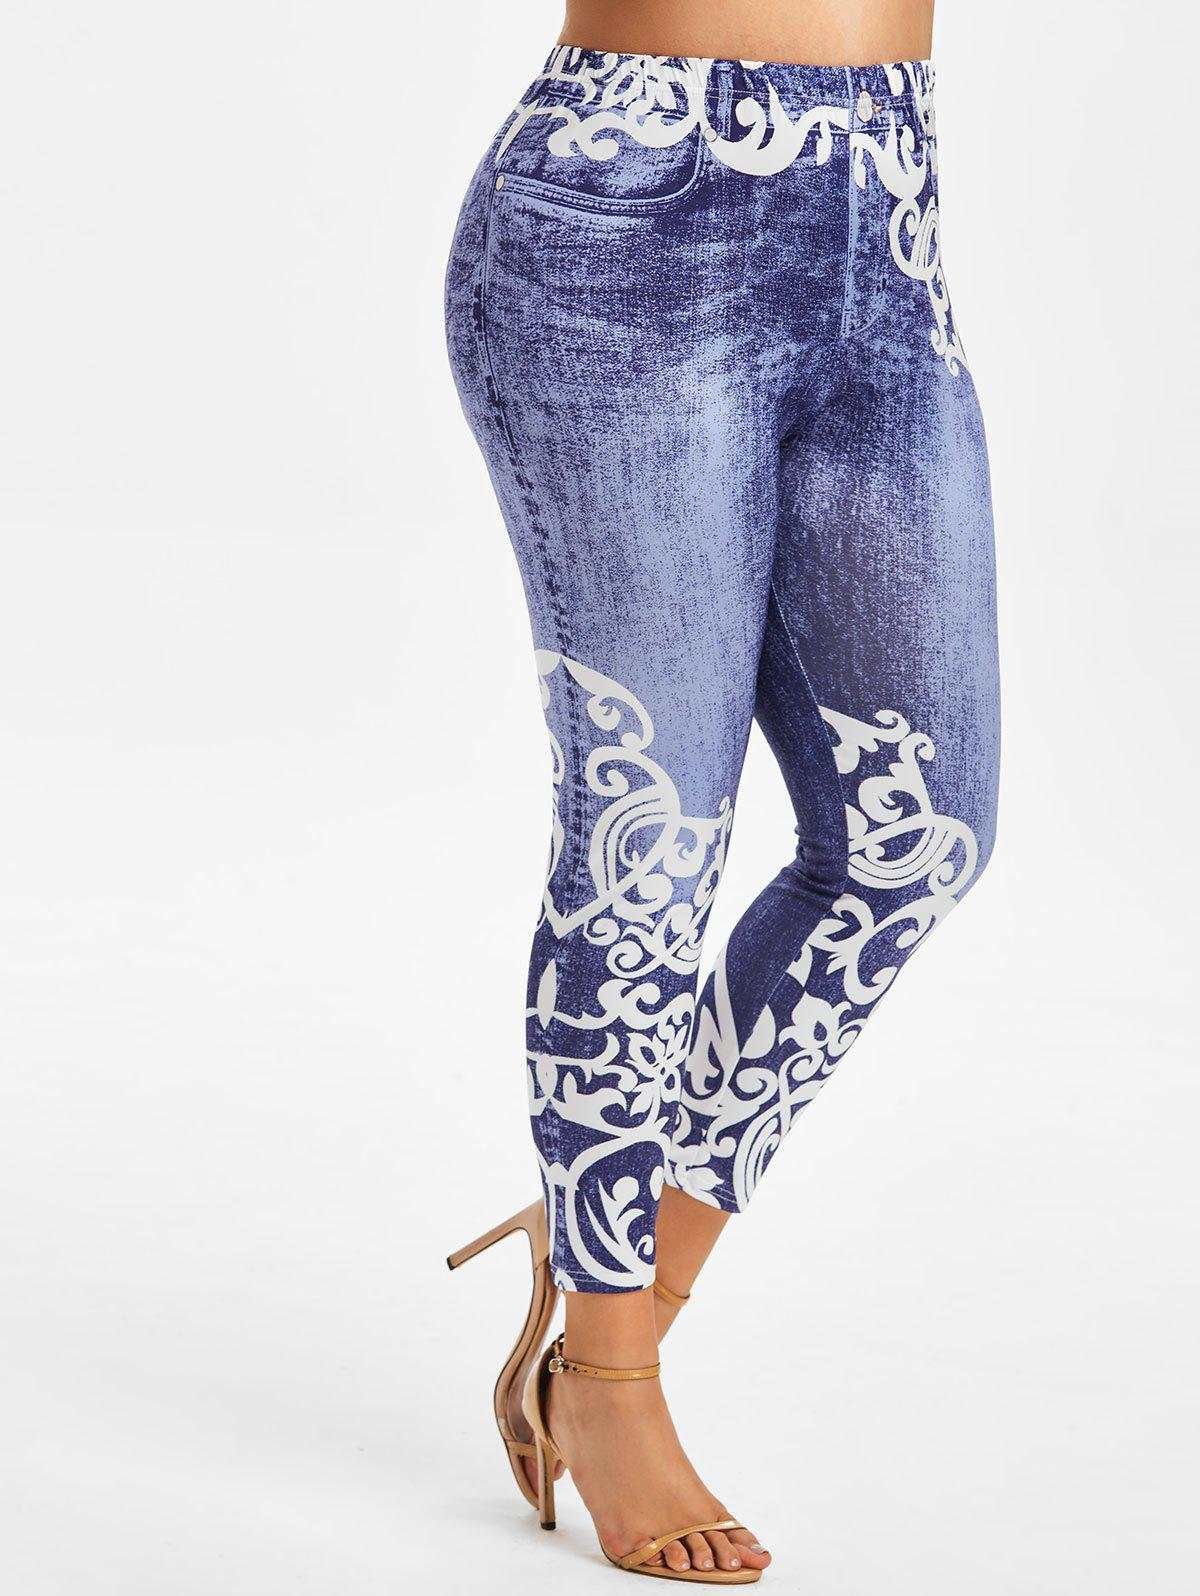 Plus Size Anthemion 3D Jean Pattern High Rise Jeggings - DEEP BLUE 5X